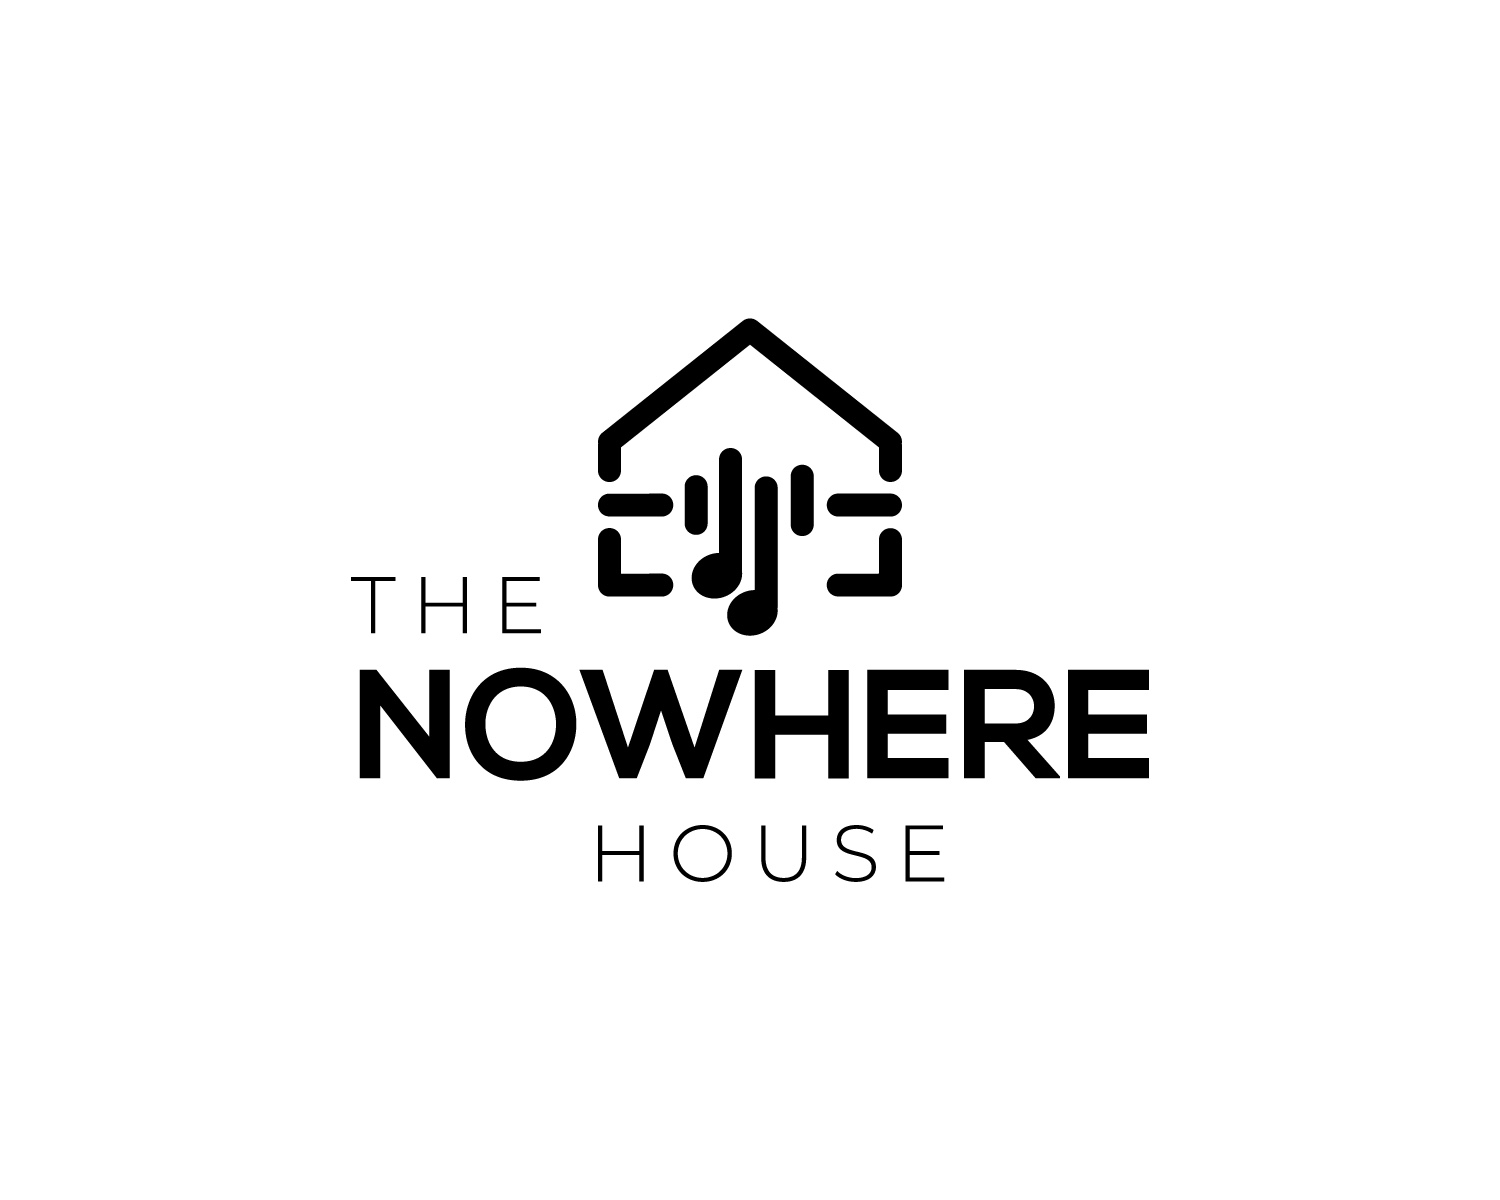 The Nowhere House